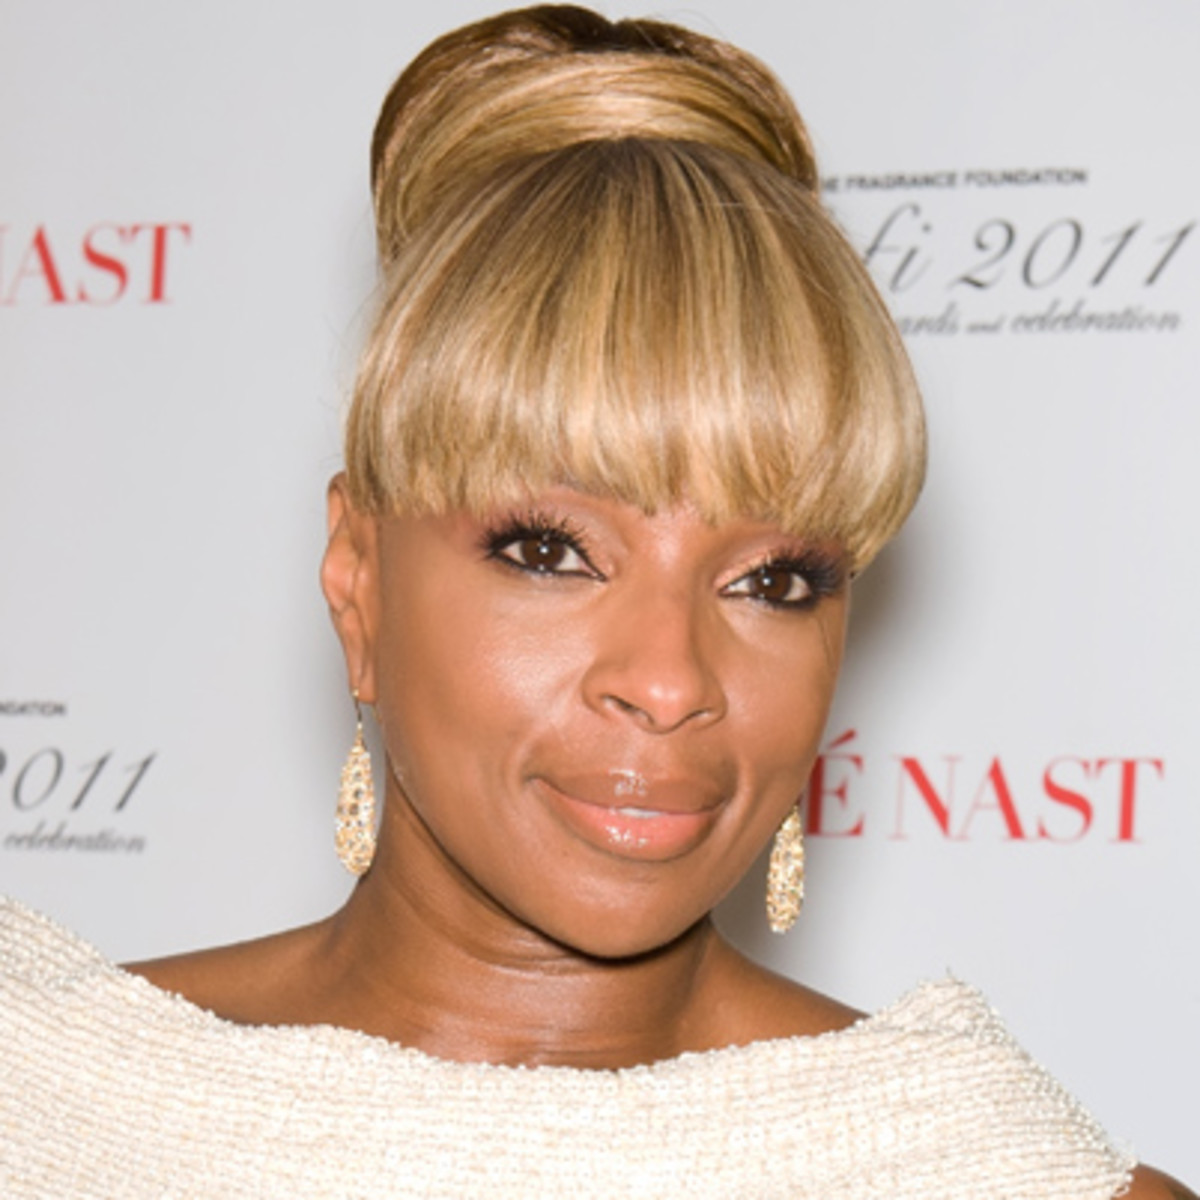 Mary J. Blige - Songs, Albums & Age - Biography